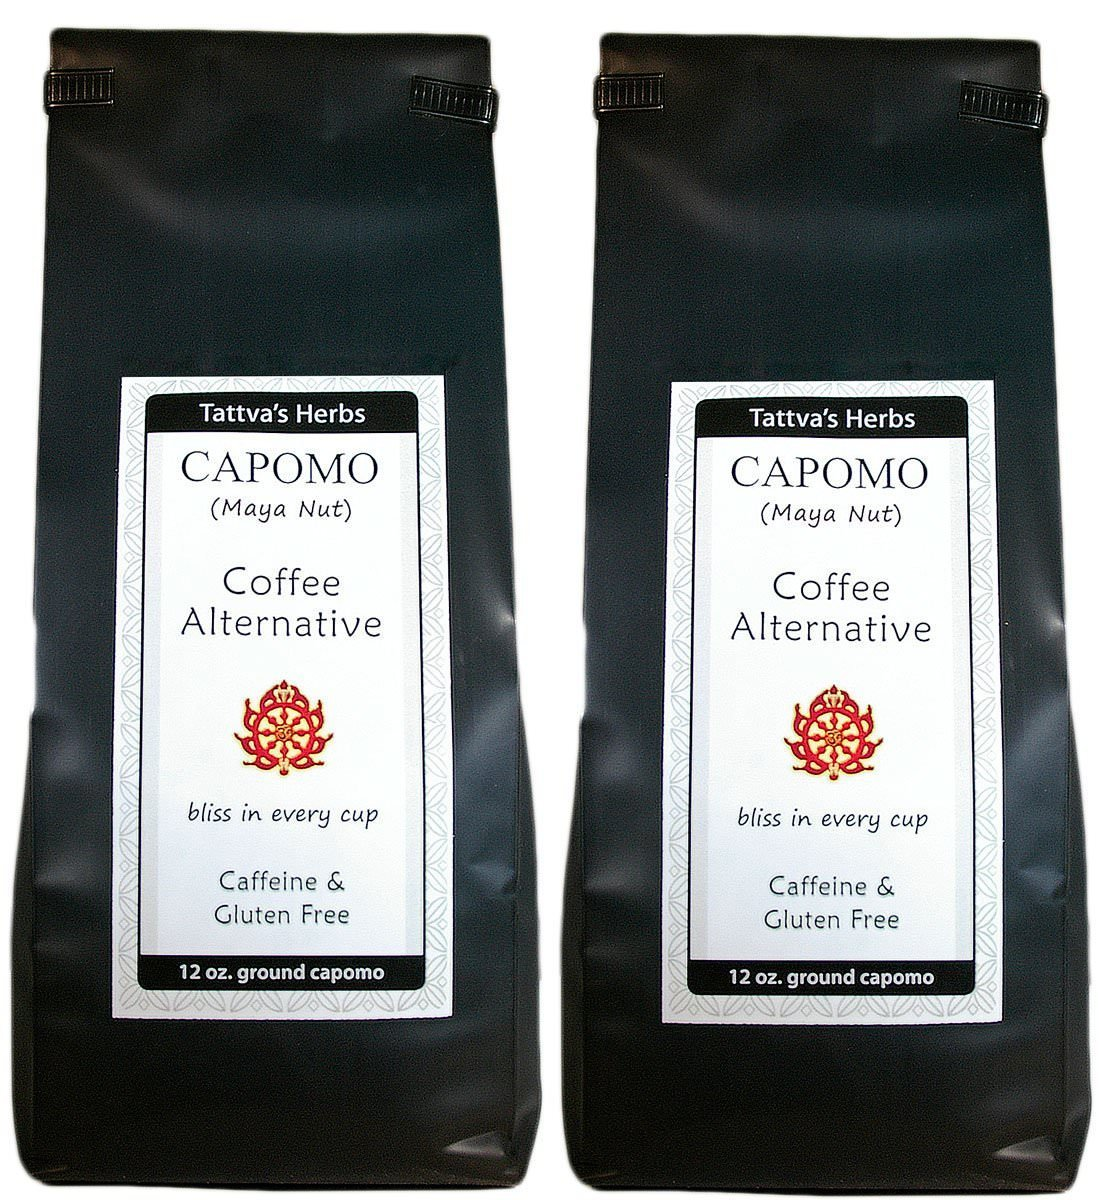 Capomo Herbal Coffee Substitute - Acid Free, Caffeine Free And Gluten Free - Natural Dark Roast - Maya Nut , Ramon Seeds - 2 Pack From Tattva's Herbs